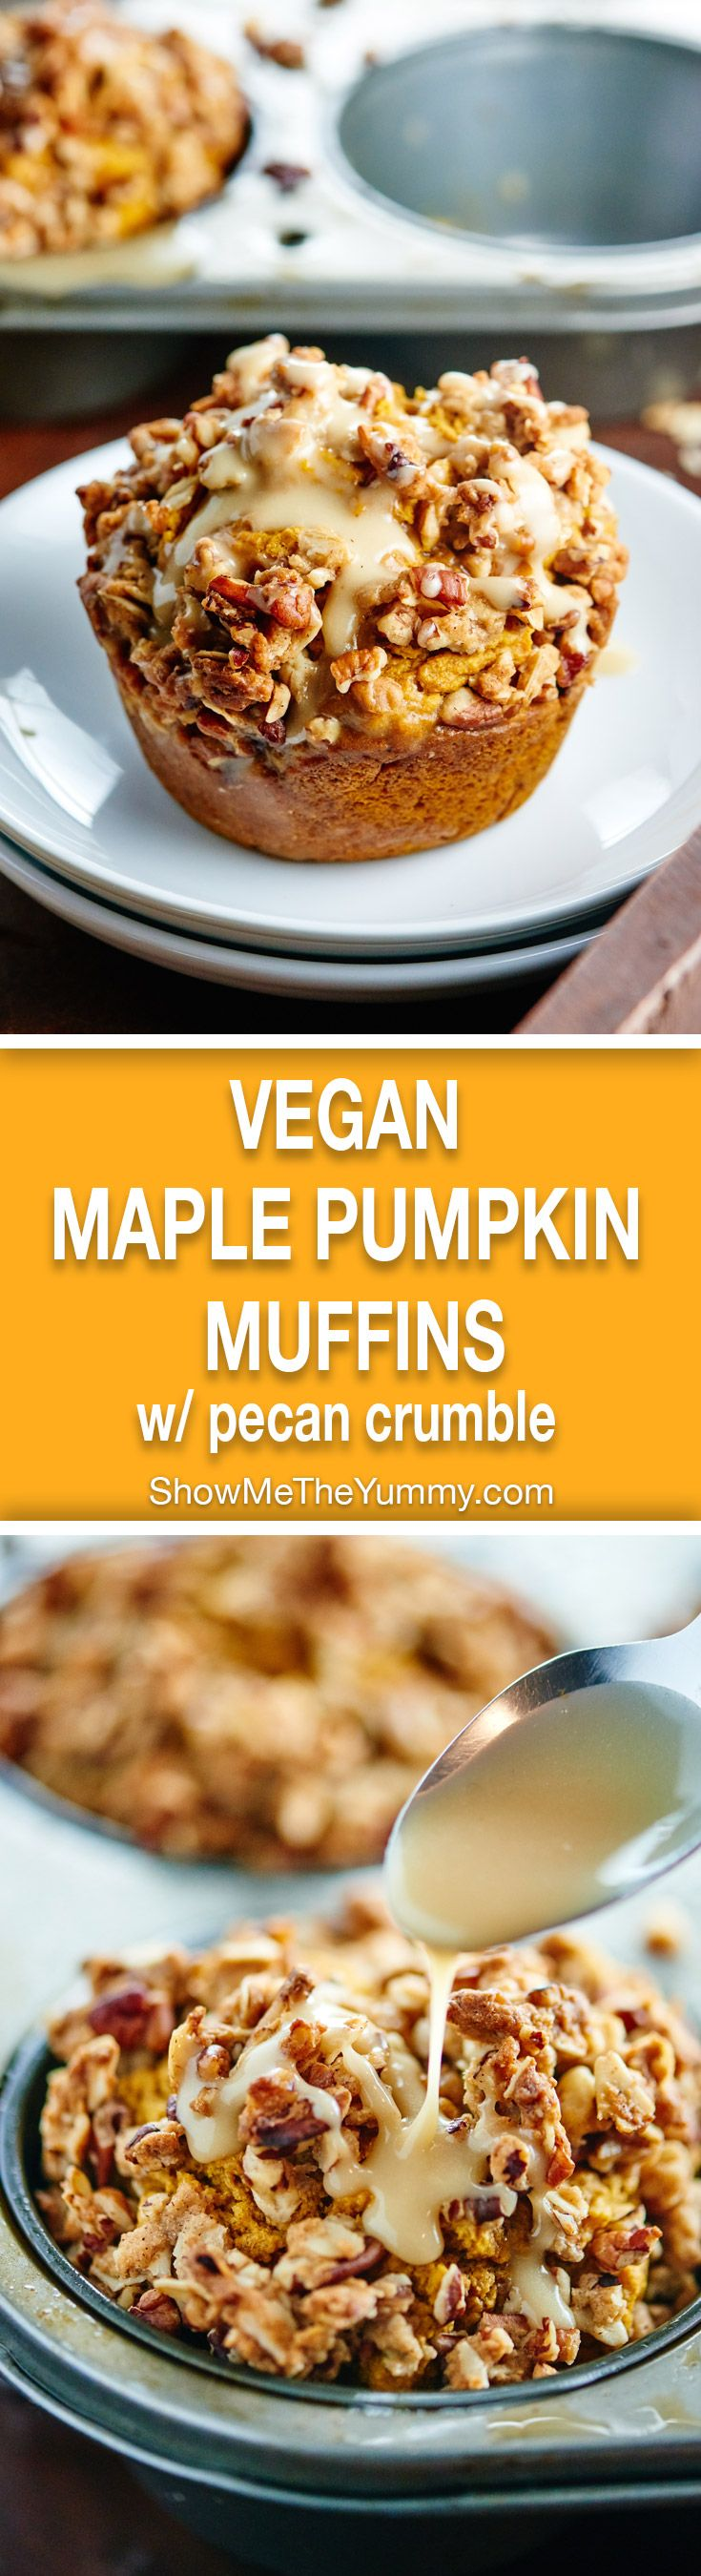 These healthy vegan pumpkin muffins are made w/ whole wheat flour & are naturally sweetened w/ maple syrup! They're topped w/ pecan streusel & maple glaze! showmetheyummy.com #pumpkin #vegan